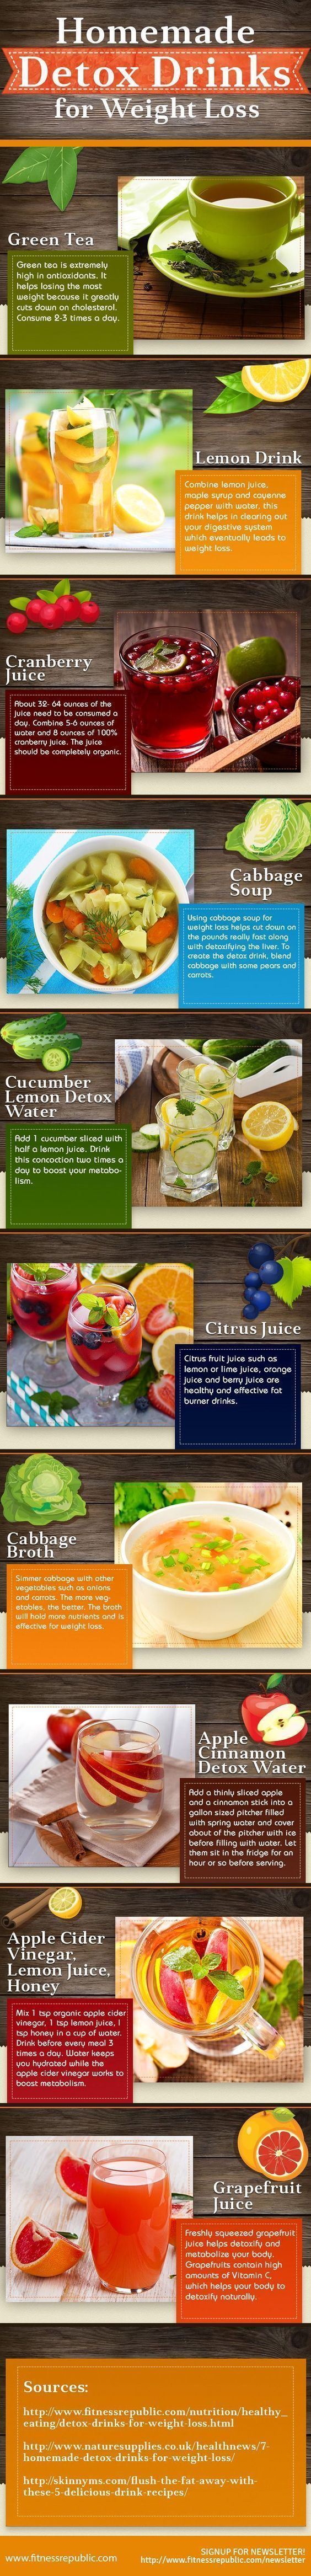 Longing to shed some pounds? Using detox drinks to lose weight has become very popular because the procedure is natural, organic and happens in a relatively shorter time period. #timetoloseweigt #juicingtoloseweight